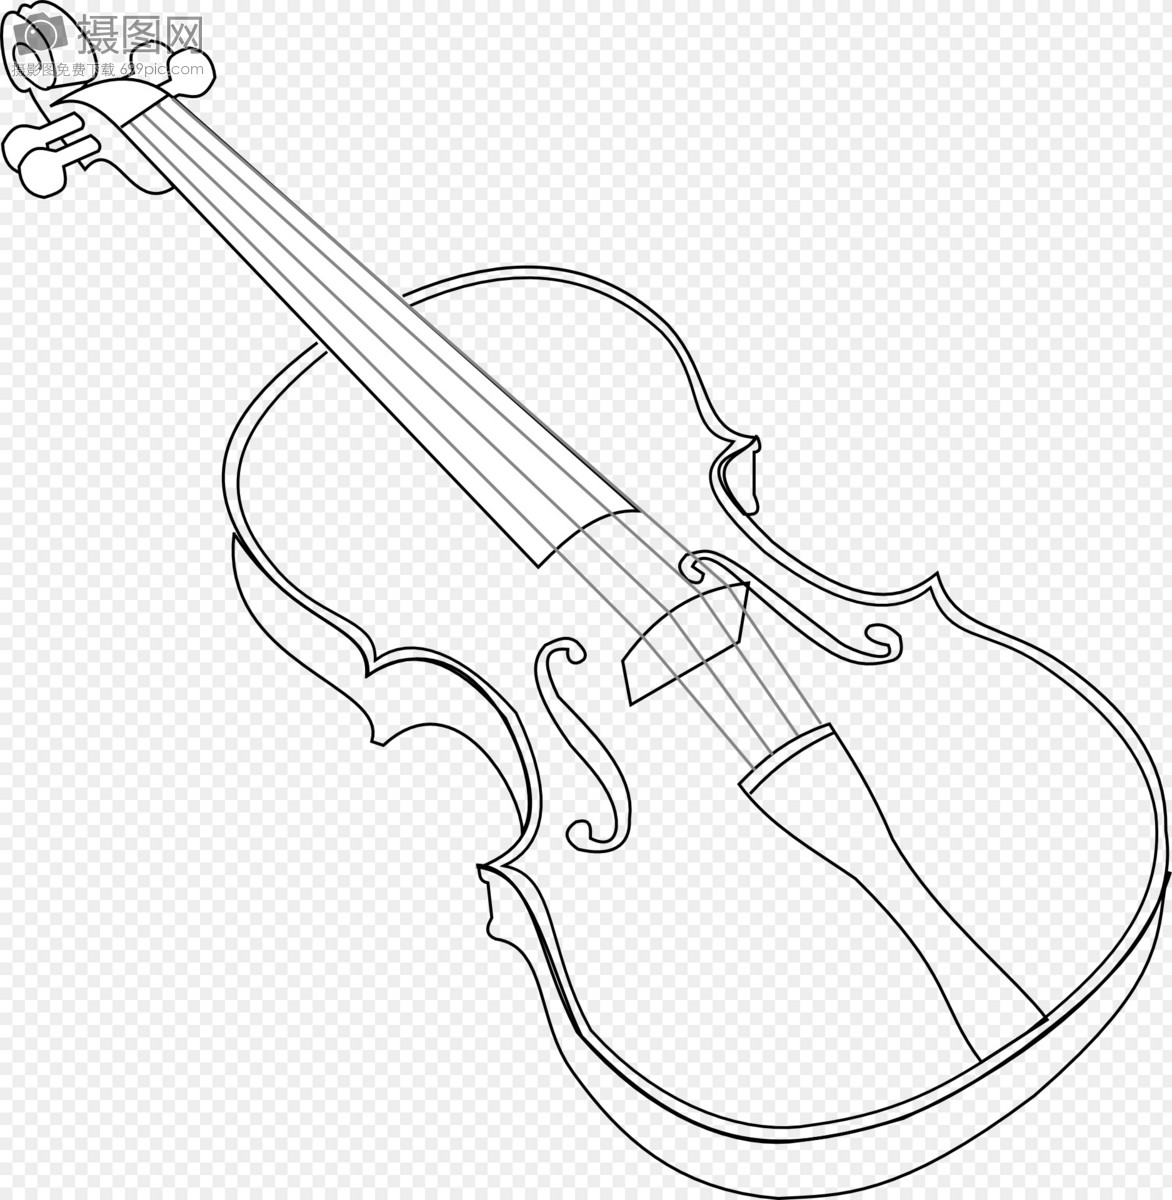 violin template images graphic elements pictures id400017096 lovepik